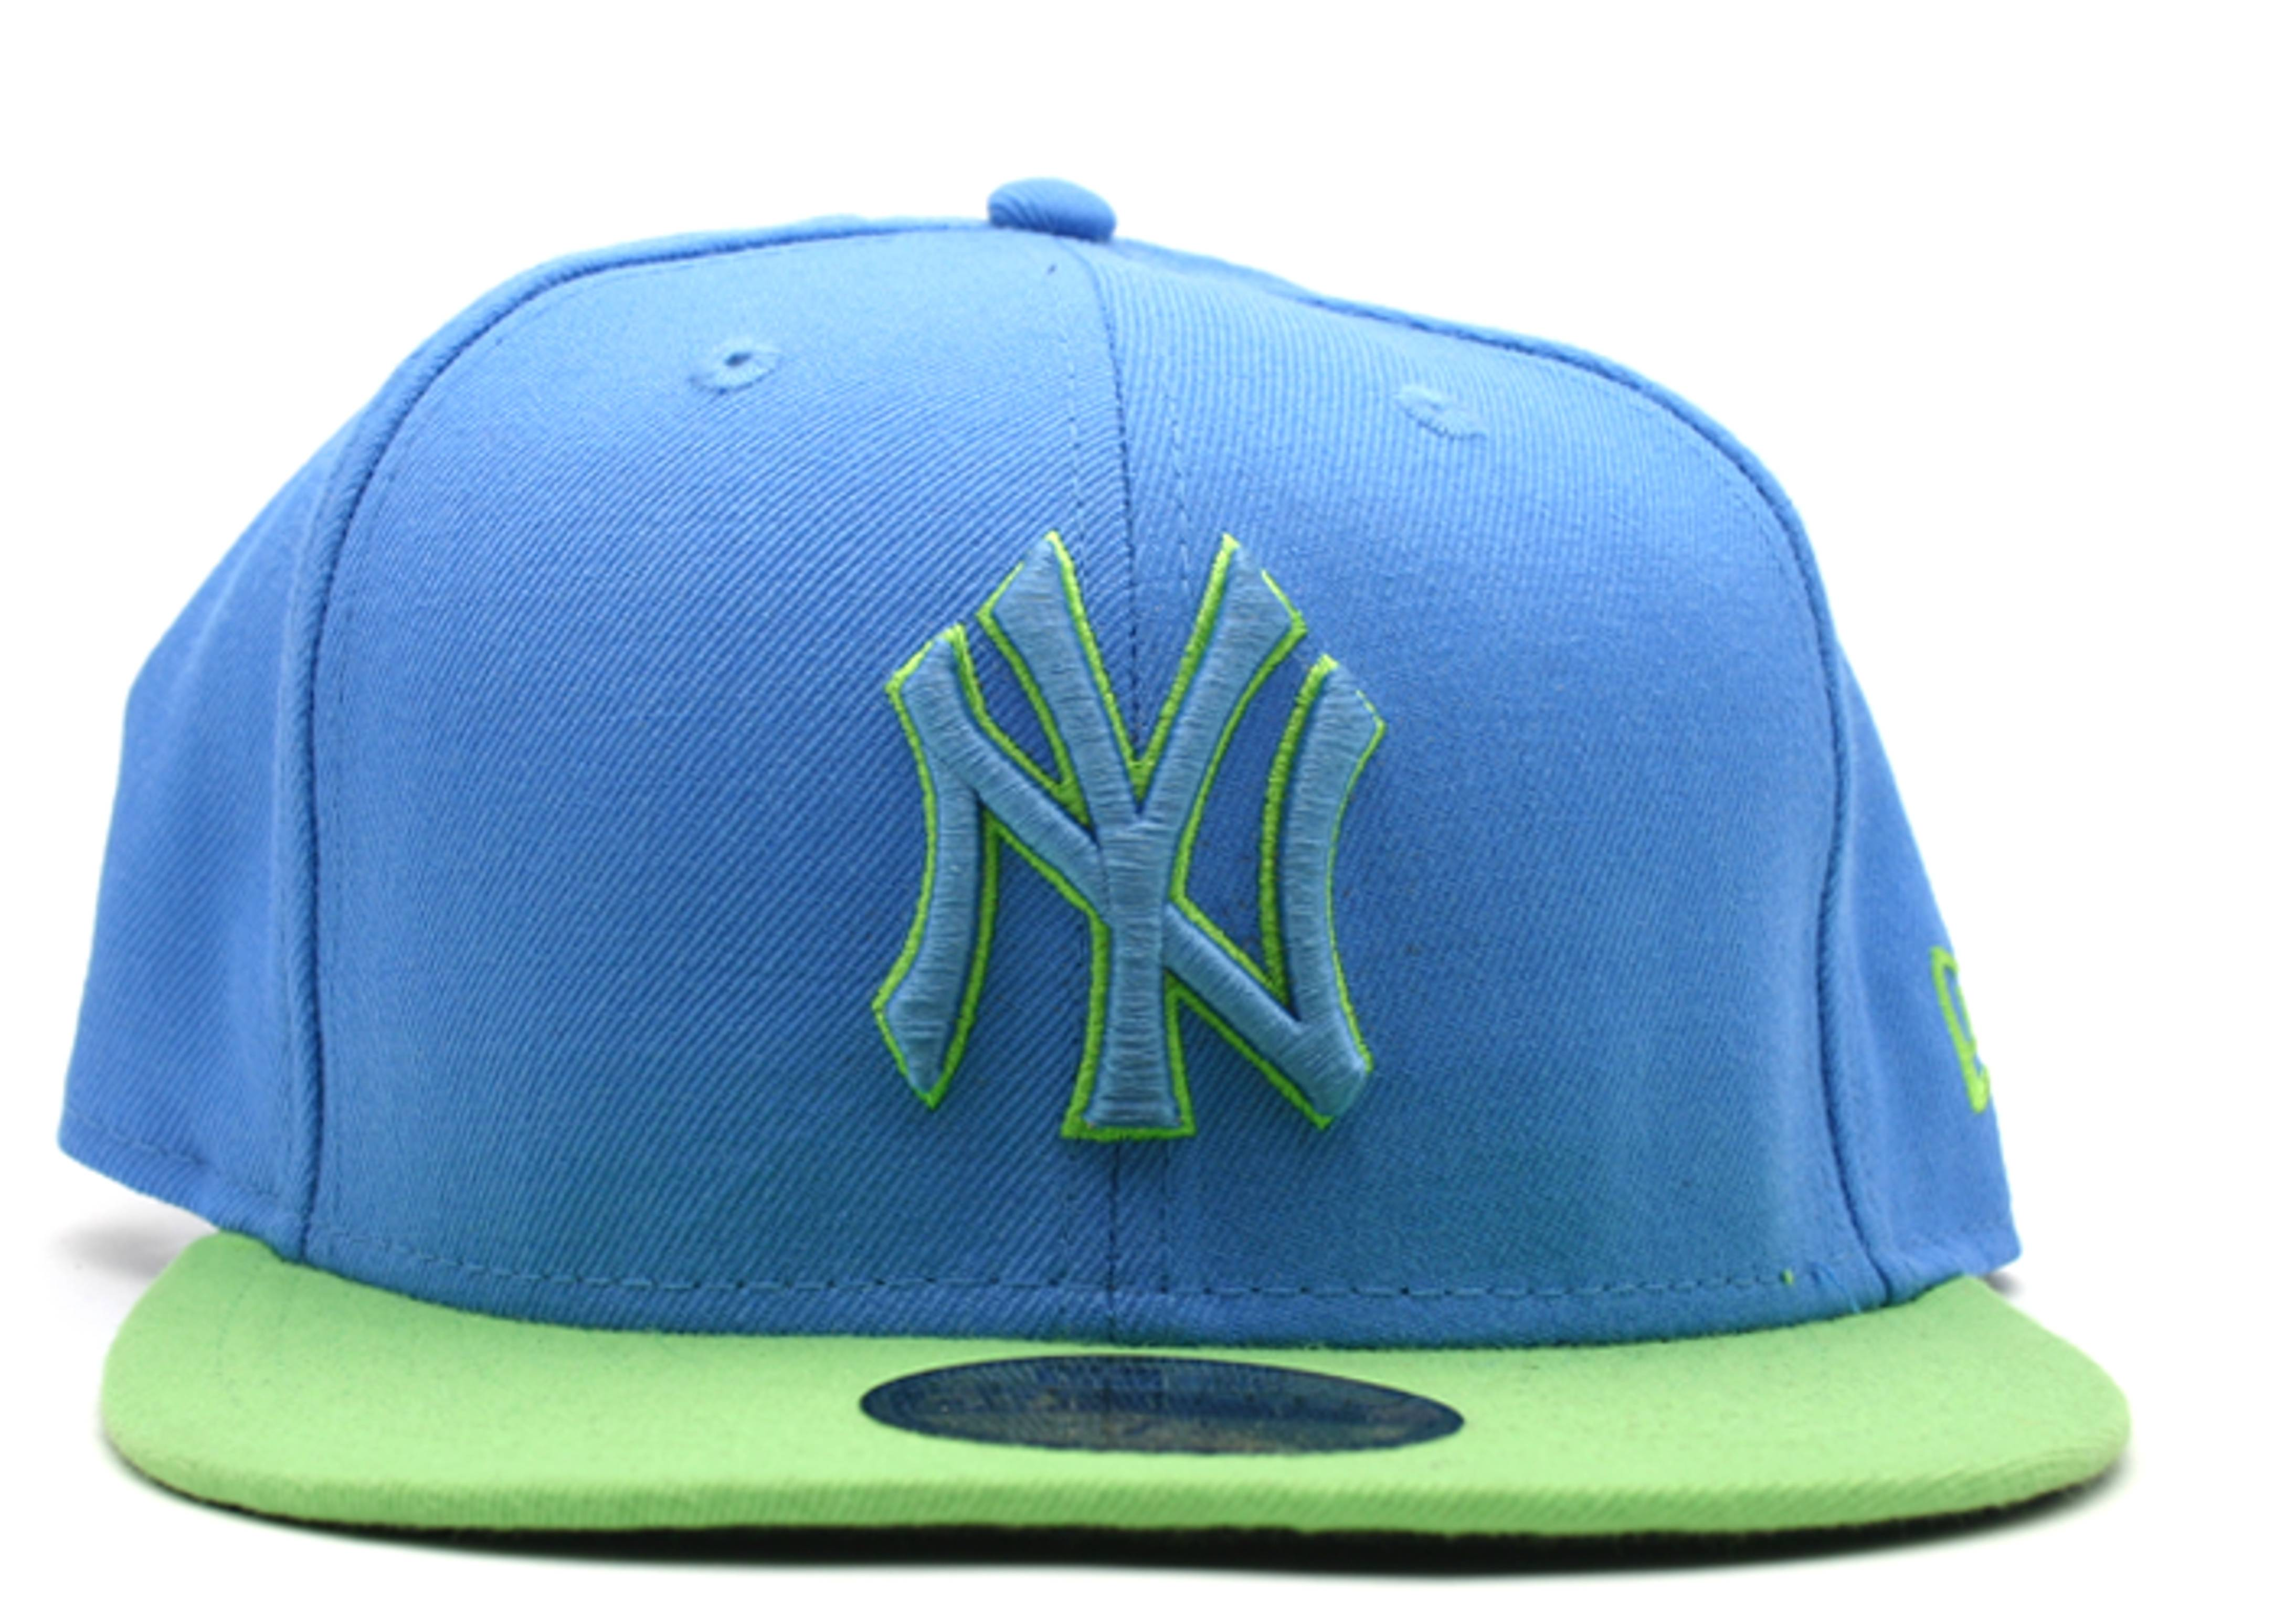 57c47196474 New York Yankees Fitted - New Era - 10173973 - airforce lime ...